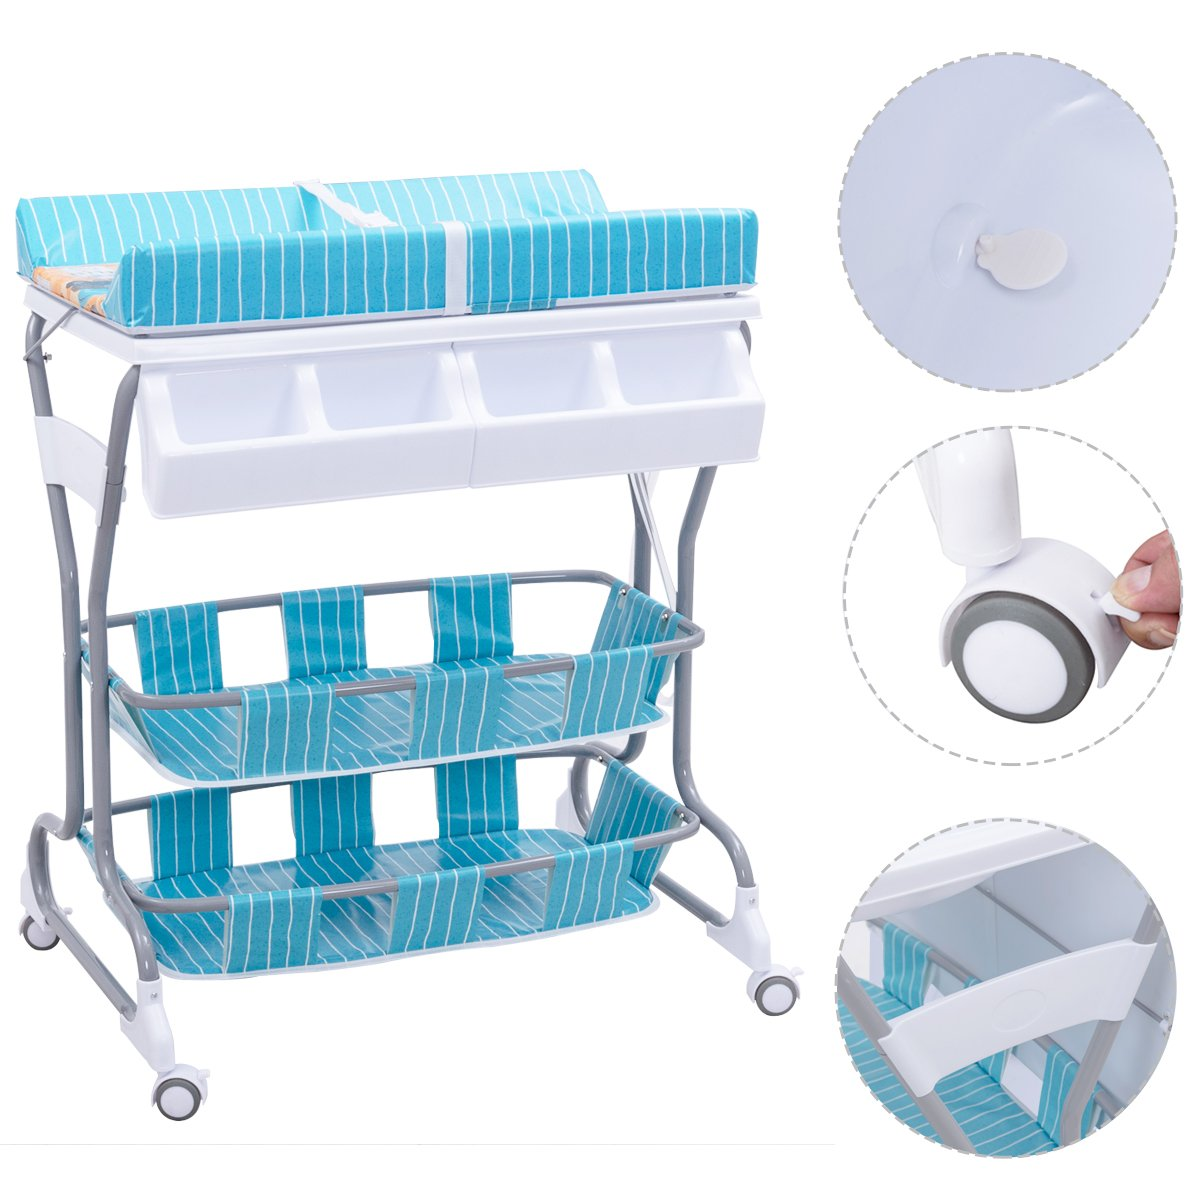 Pink Costway 2 in 1 Infant Changing Table Baby Bath Tub Unit Rolling Station Storage Dresser